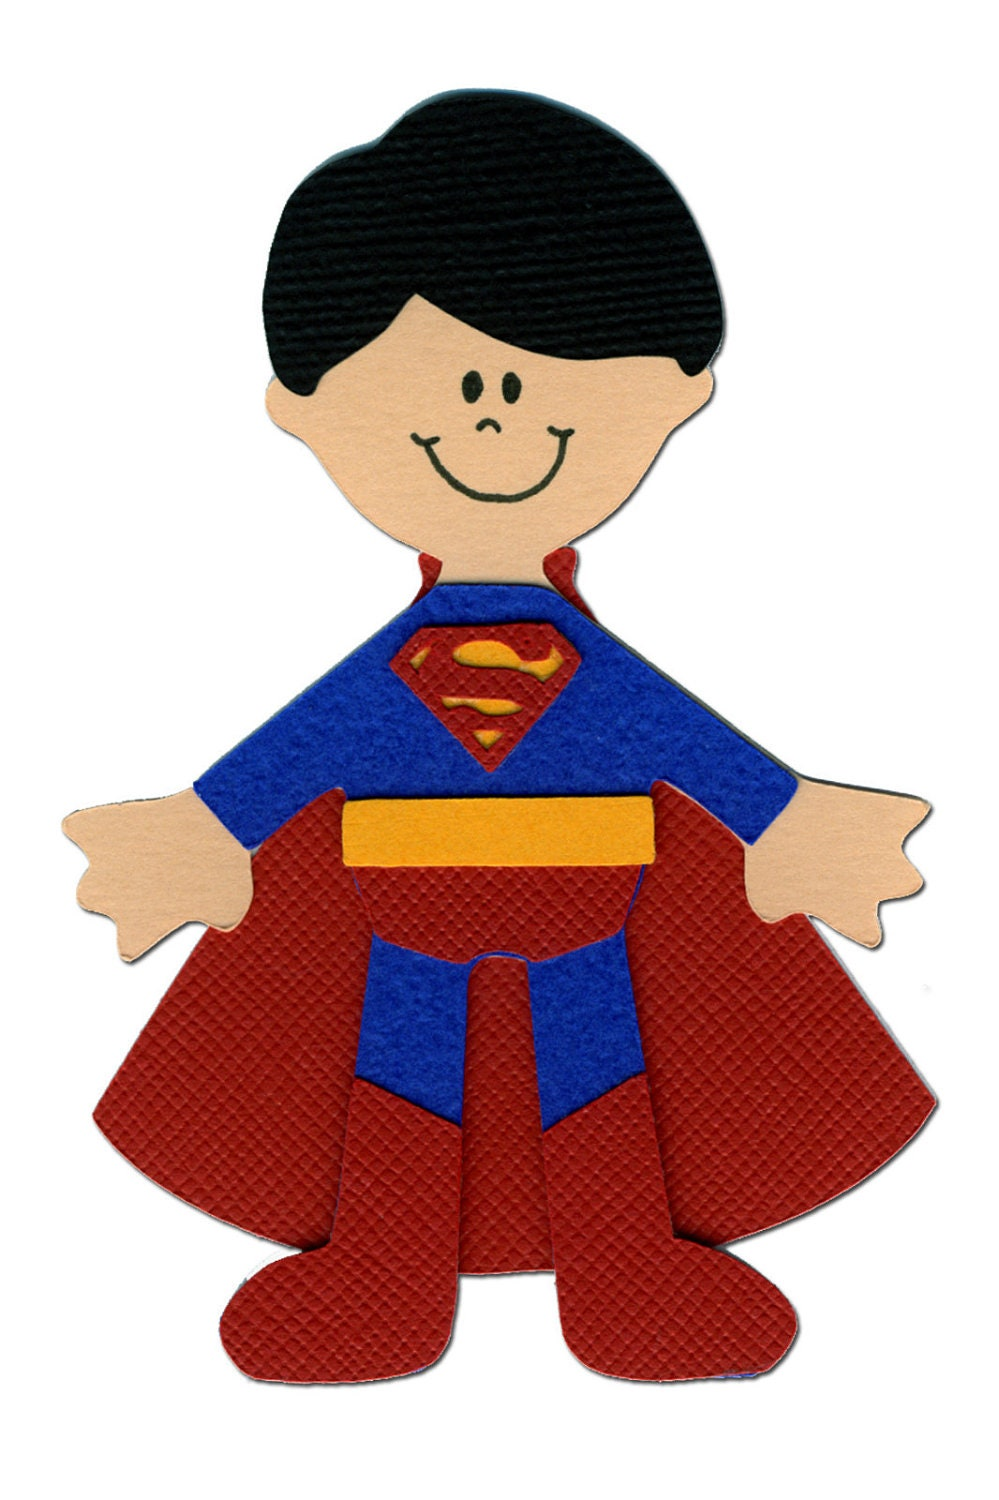 superman hero essay Batman vs superman comparison dc comics superheroes batman and superman were both created in the 1930s while batman has no superpowers, superman is an alien from the planet krypton who uses his powers to help save the earth.